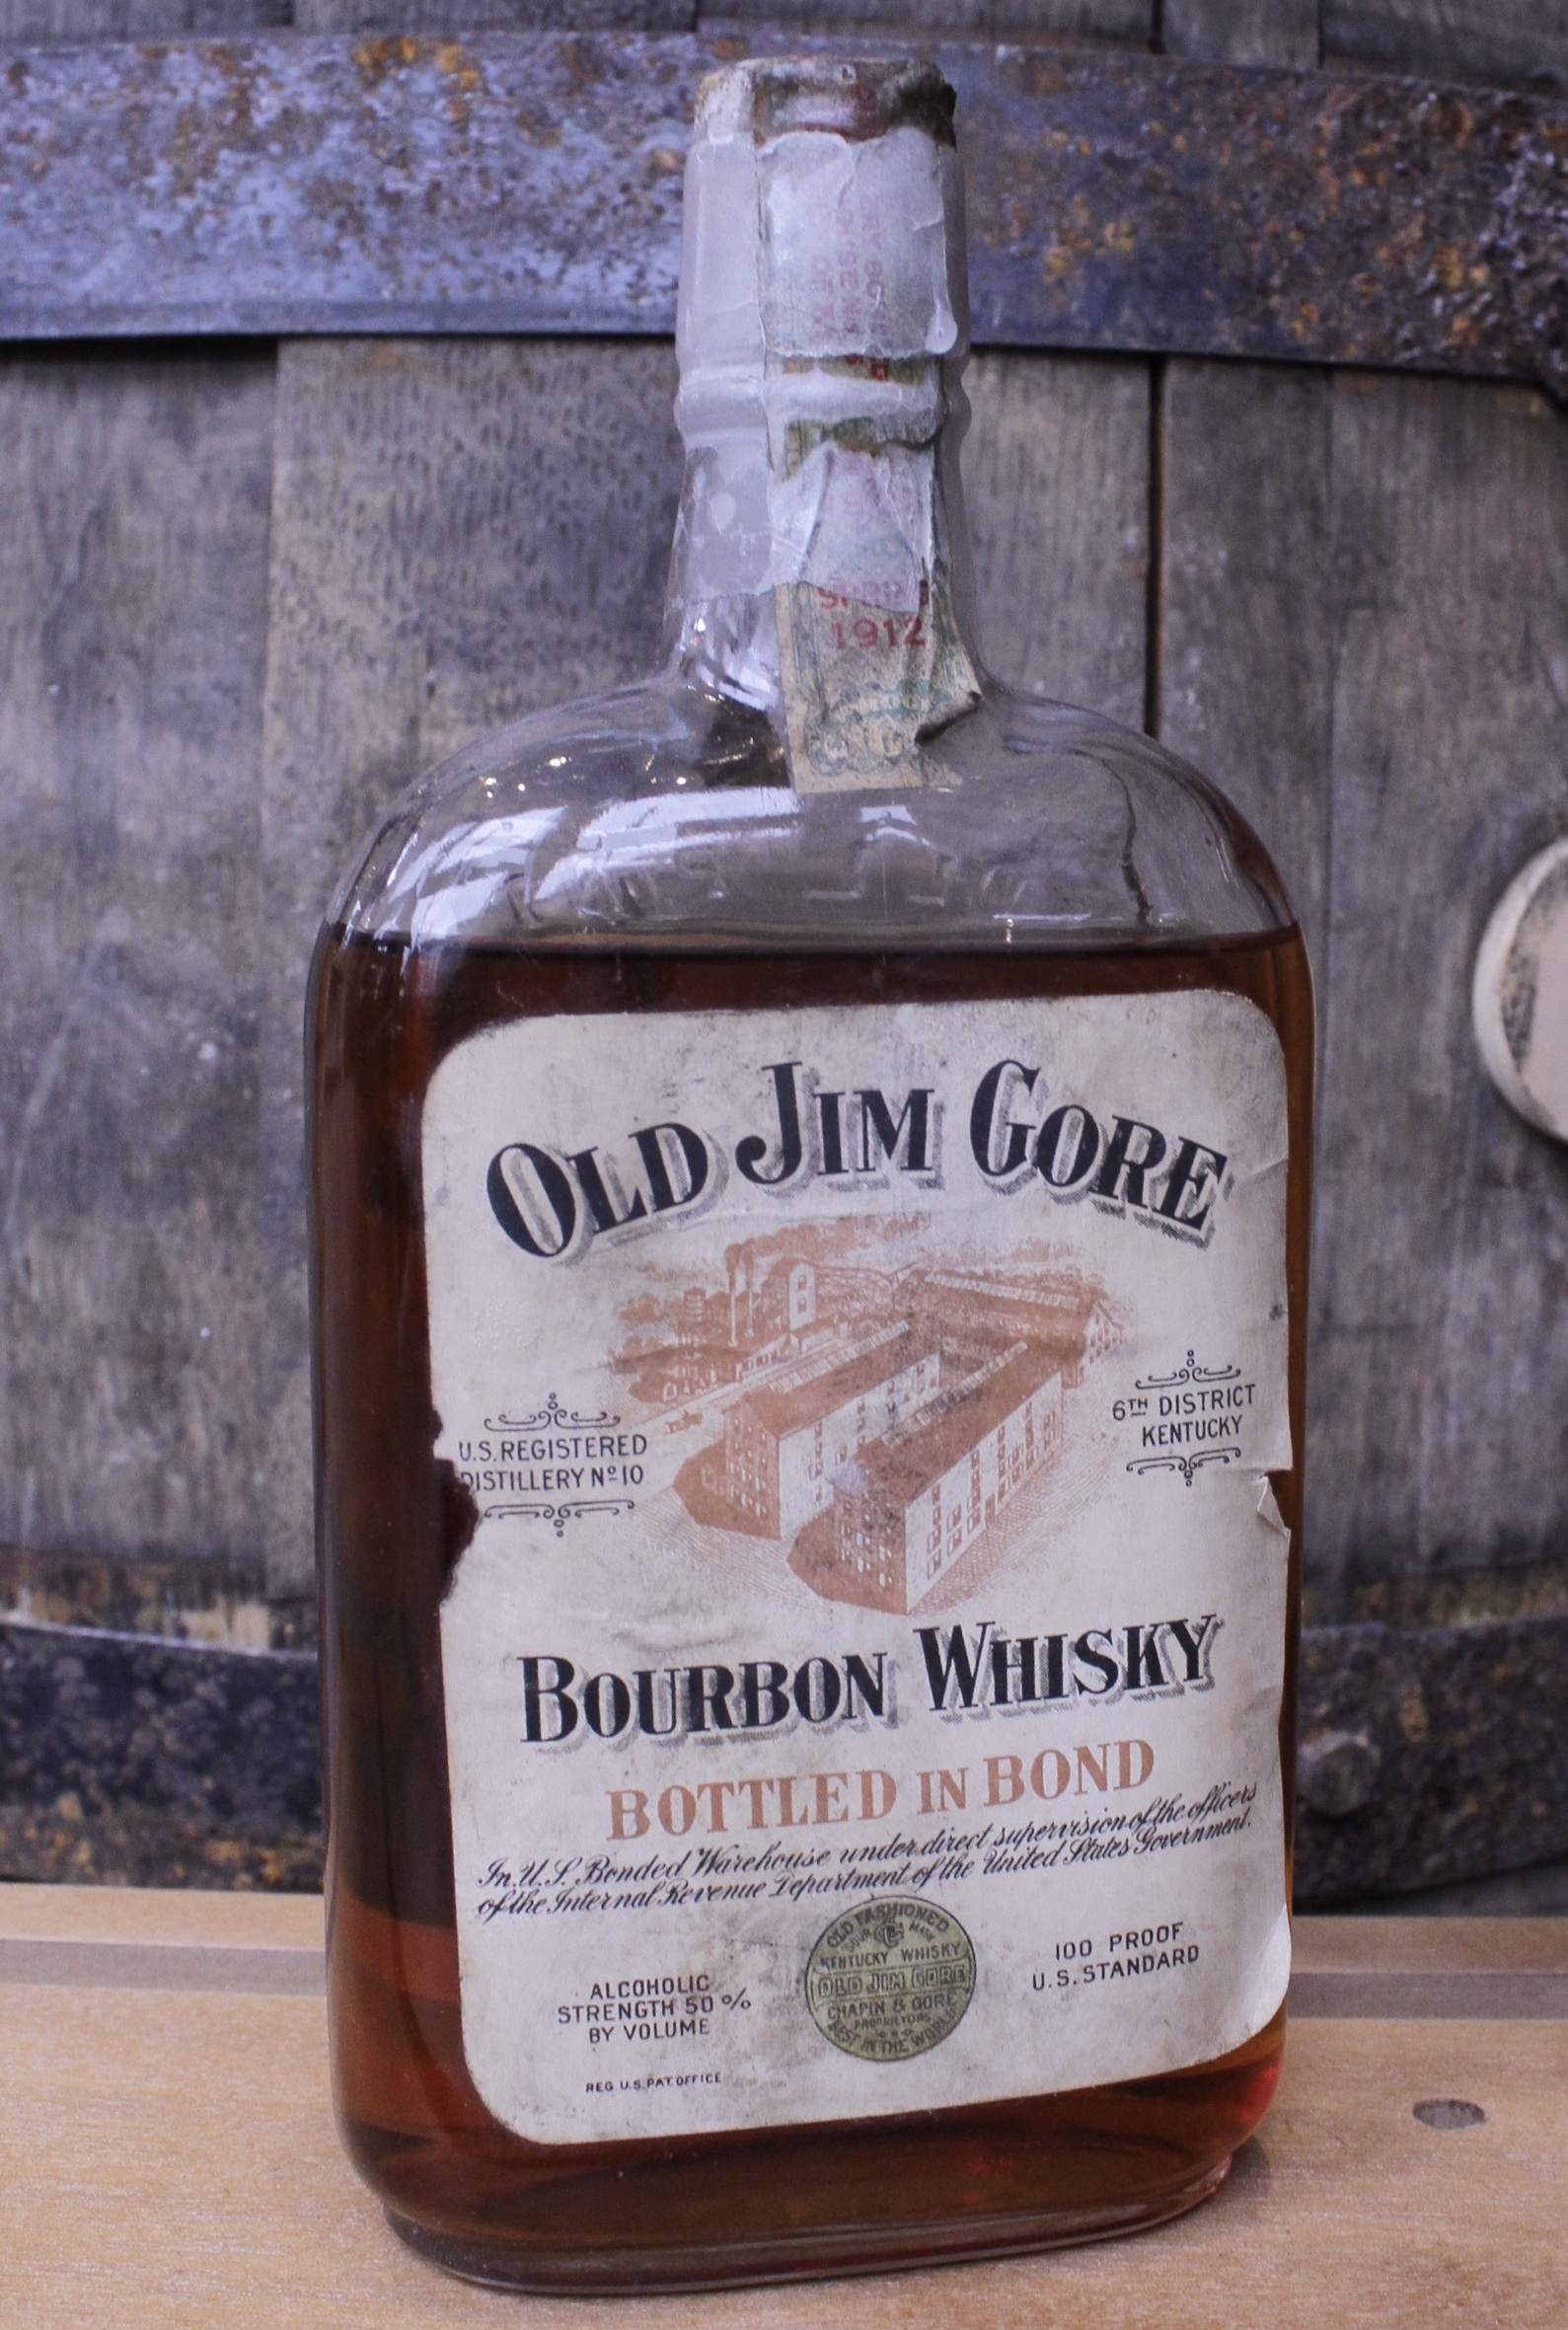 "OLD JIM GORE BOURBON WHISKY    About the Product   One pint of Kentucky bourbon (100 proof), aged 13 years, bottled in bond. Distilled in spring 1912* by Wiglesworth Bros. Co. Bottled in fall 1925* by James E. Pepper & Co.  Named after one of its Chicago-based proprietors [Chapin & Gore] and advertised as the ""Best in the World,"" this old-fashioned sour mash bourbon has a rare mellow flavor.   About the Distillery   6th Dist., RD #10, Wiglesworth Bros. Co. (1869 – 1919). Harrison County, Kentucky, USA.  Located on the South Fork of the Licking River four miles northwest of Cynthiana, this distillery was built in 1856 by John Poindexter. In 1869 the Wiglesworth family acquired it, tore it down and rebuilt it. By 1910 the mashing capacity had been increased to 300 bushels per day, and there were three bonded warehouses with a storage capacity for 20,000 barrels. In the late 1910s the officers were J. M. Wiglesworth, president and W. T. Wiglesworth, secretary-treasurer. Products included Old G. W. Taylor, Poindexter Bourbon, and Wiglesworth Bros. Sweet Mash. The distillery closed at Prohibition.  In 1924 all the whiskey in storage was transferred to the concentration warehouses of James E. Pepper & Co., a facility in Lexington that had been leased in 1907 for 20 years by Joseph Wolf of Chicago, where it was bottled for medicinal spirits."